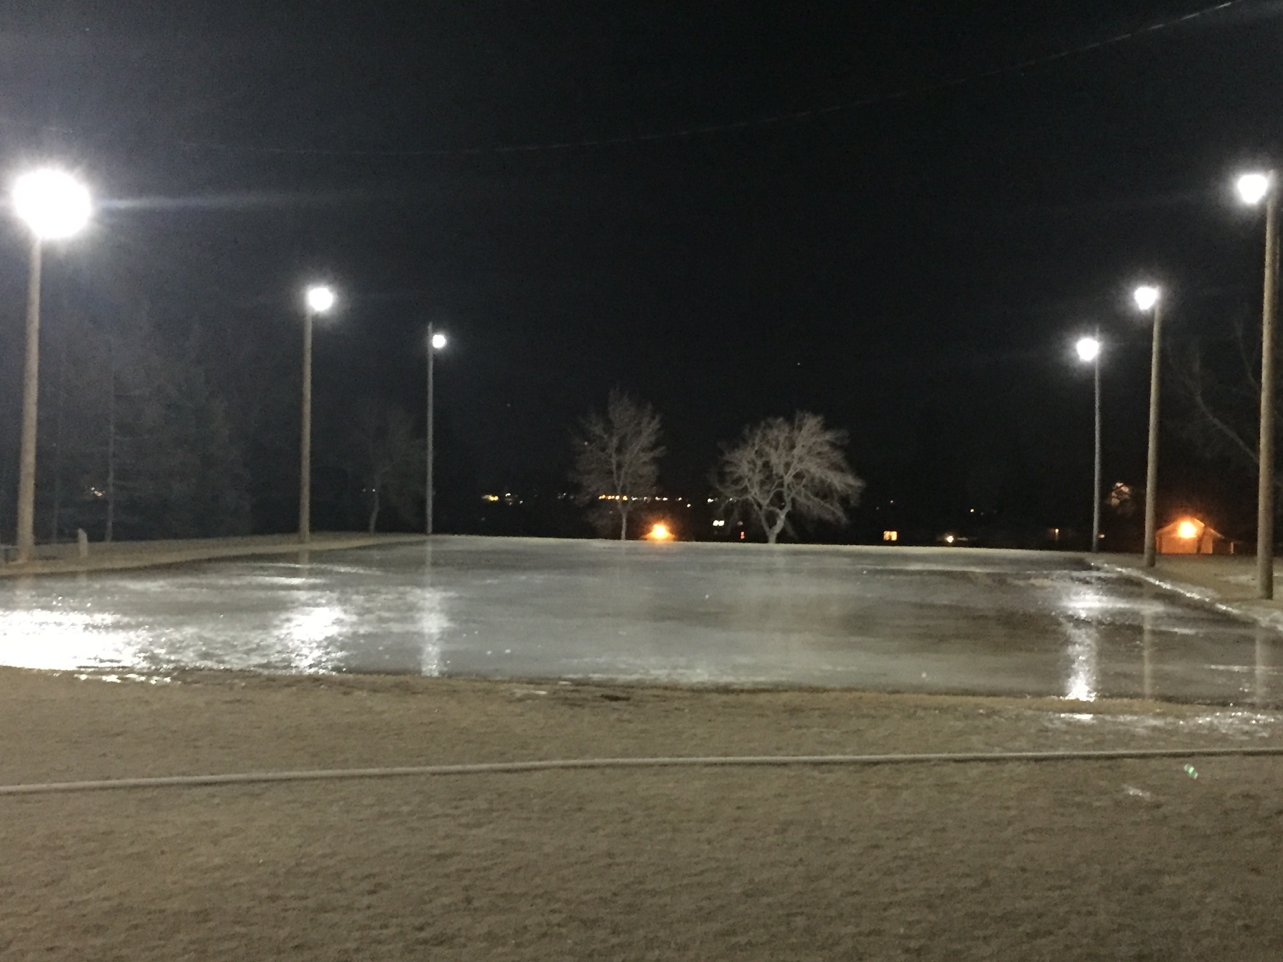 ... ENMAX And The Federation Of Calgary Communities For Their Financial  Support In Replacing Our Outdoor Ice Rink Light Fixtures With New LED  Lighting.